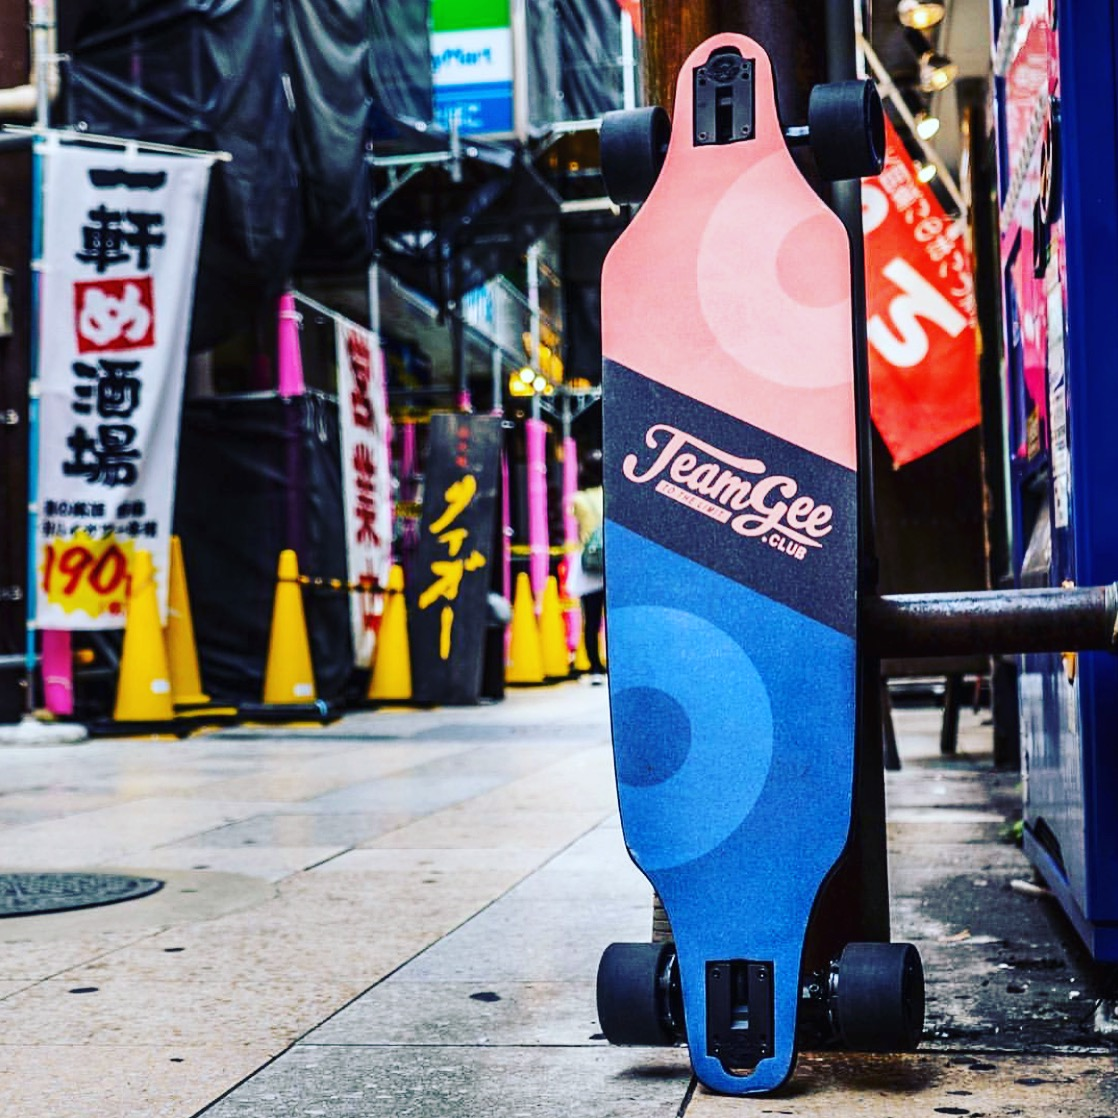 Why Are Electric Skateboards Cool - ConclusionThat's a short but the best list of reasons for why you should buy an electric skateboard. There's no doubt that you would benefit from riding an electric longboard. Whether it's saving money, the environment, running your errands, carving all year round or getting to meet new people, there's an excuse for everyone.